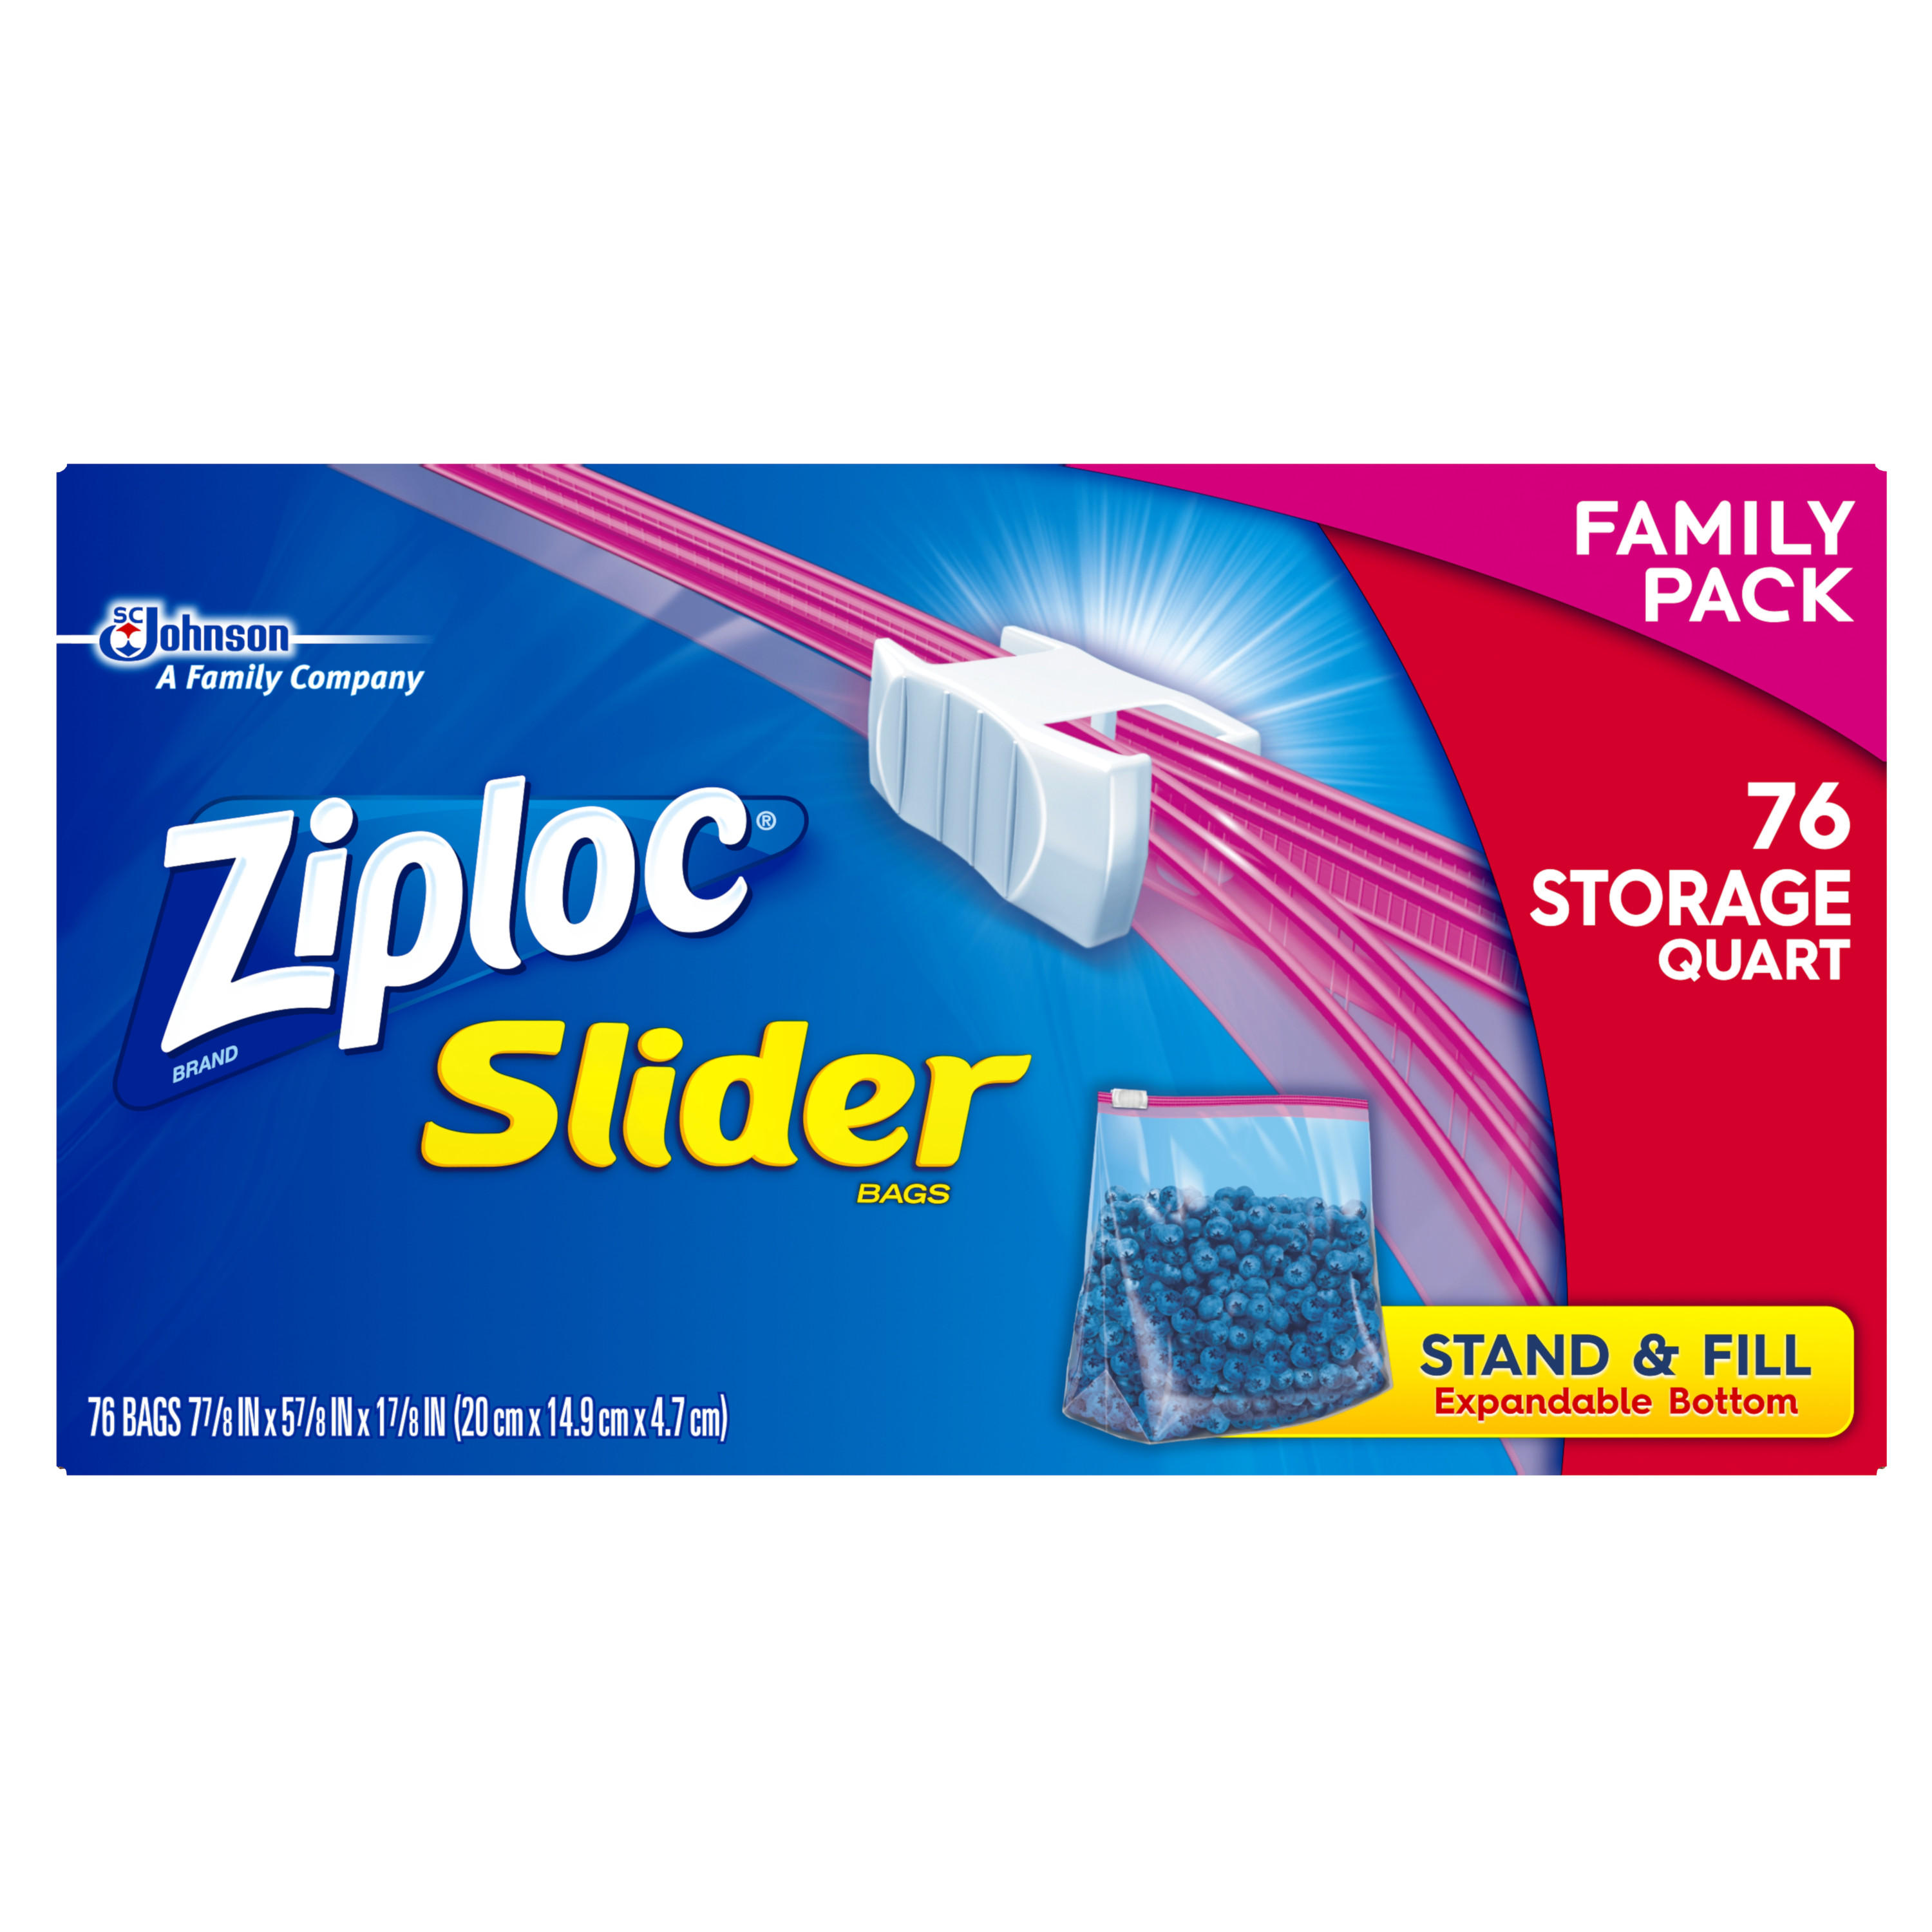 Ziploc Slider Zipper Food Storage Bags, Quart, 76 Ct